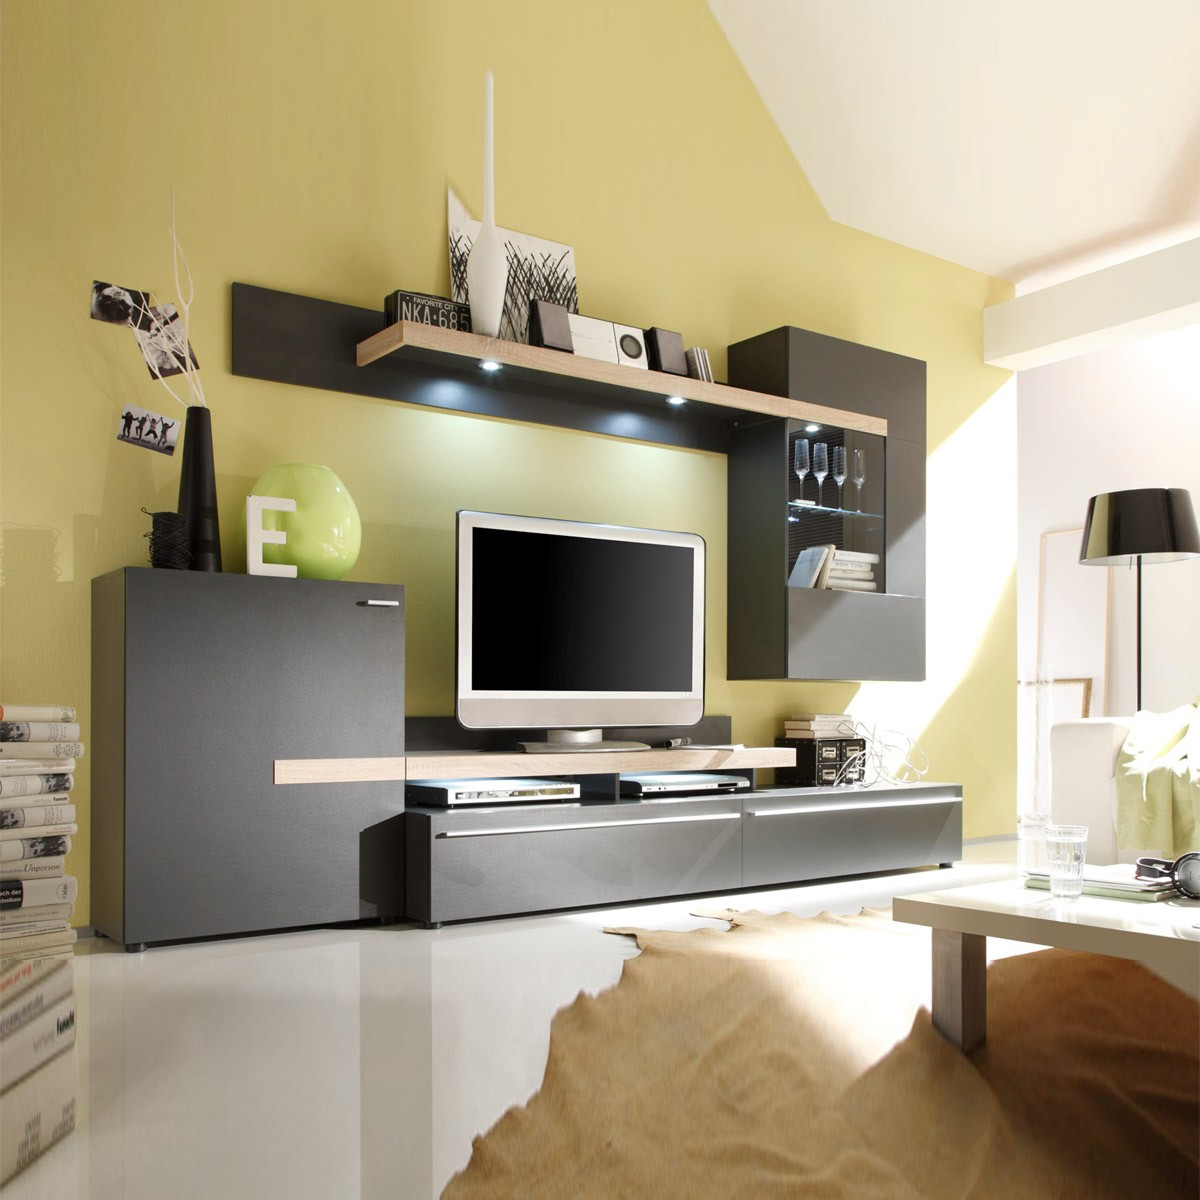 schrankw nde wohnw nde home immoviva design und luxus f r ihr zuhause. Black Bedroom Furniture Sets. Home Design Ideas